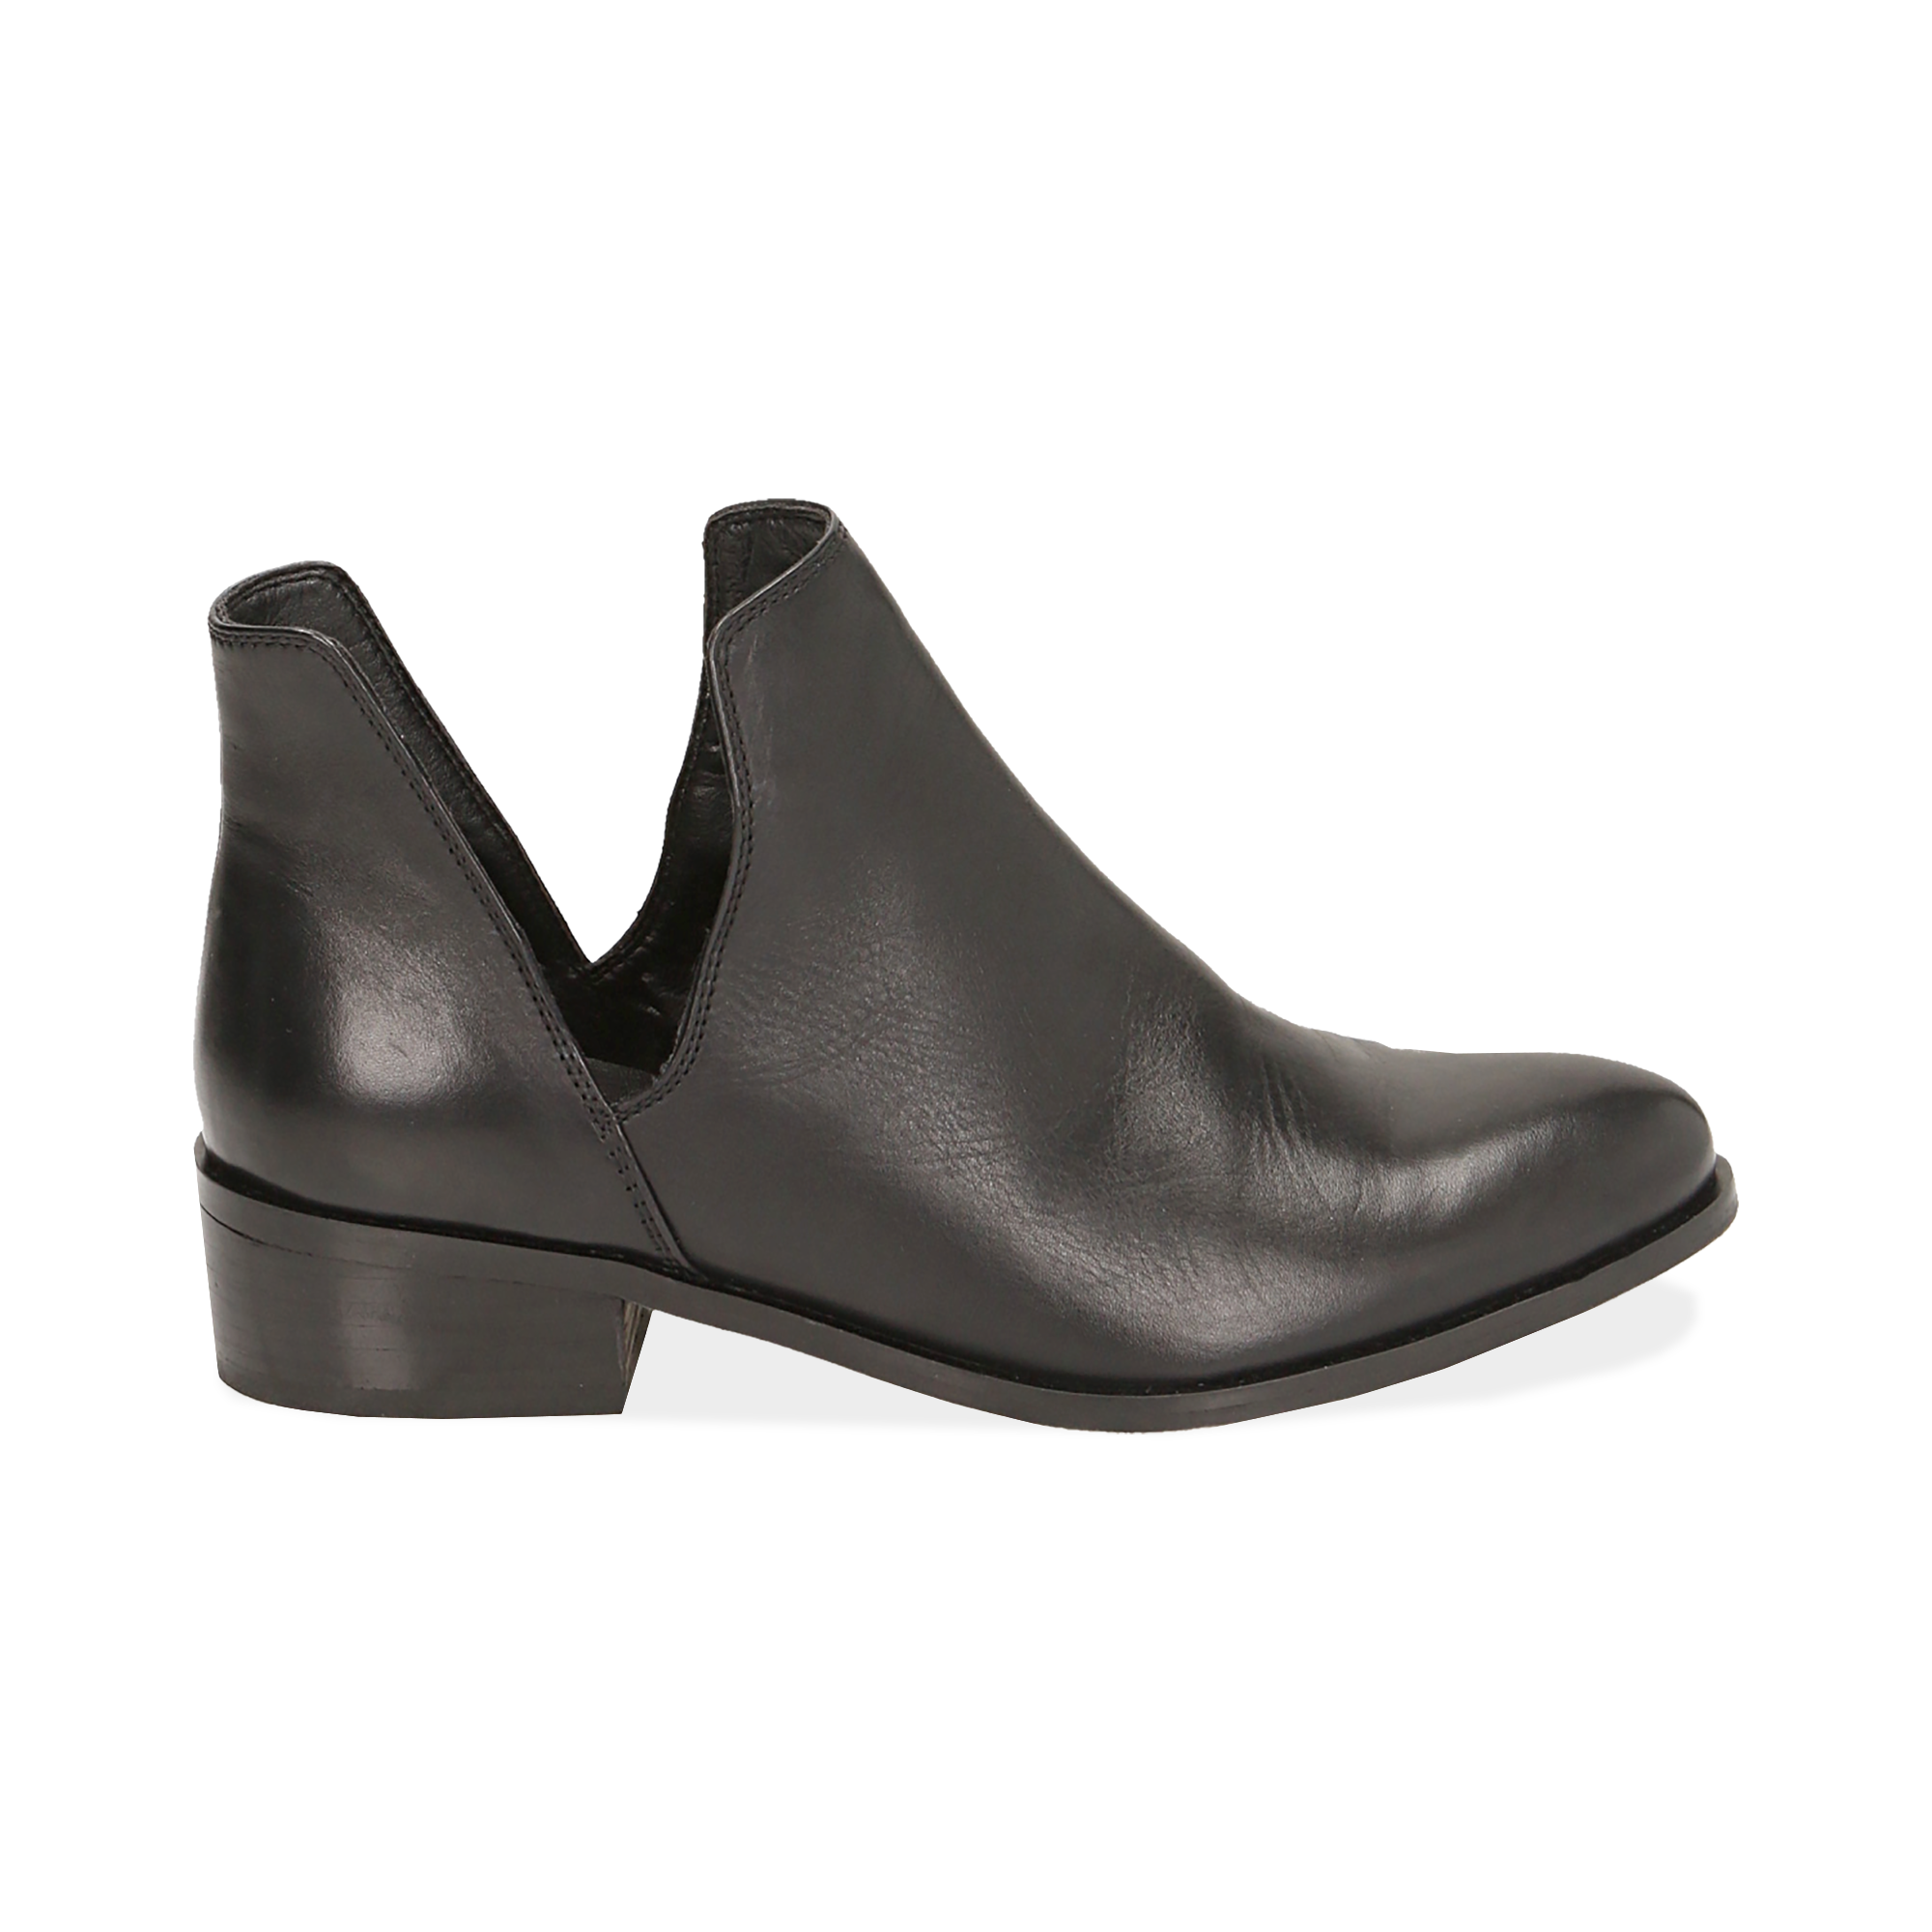 Ankle boots neri in pelle, tacco 3 cm